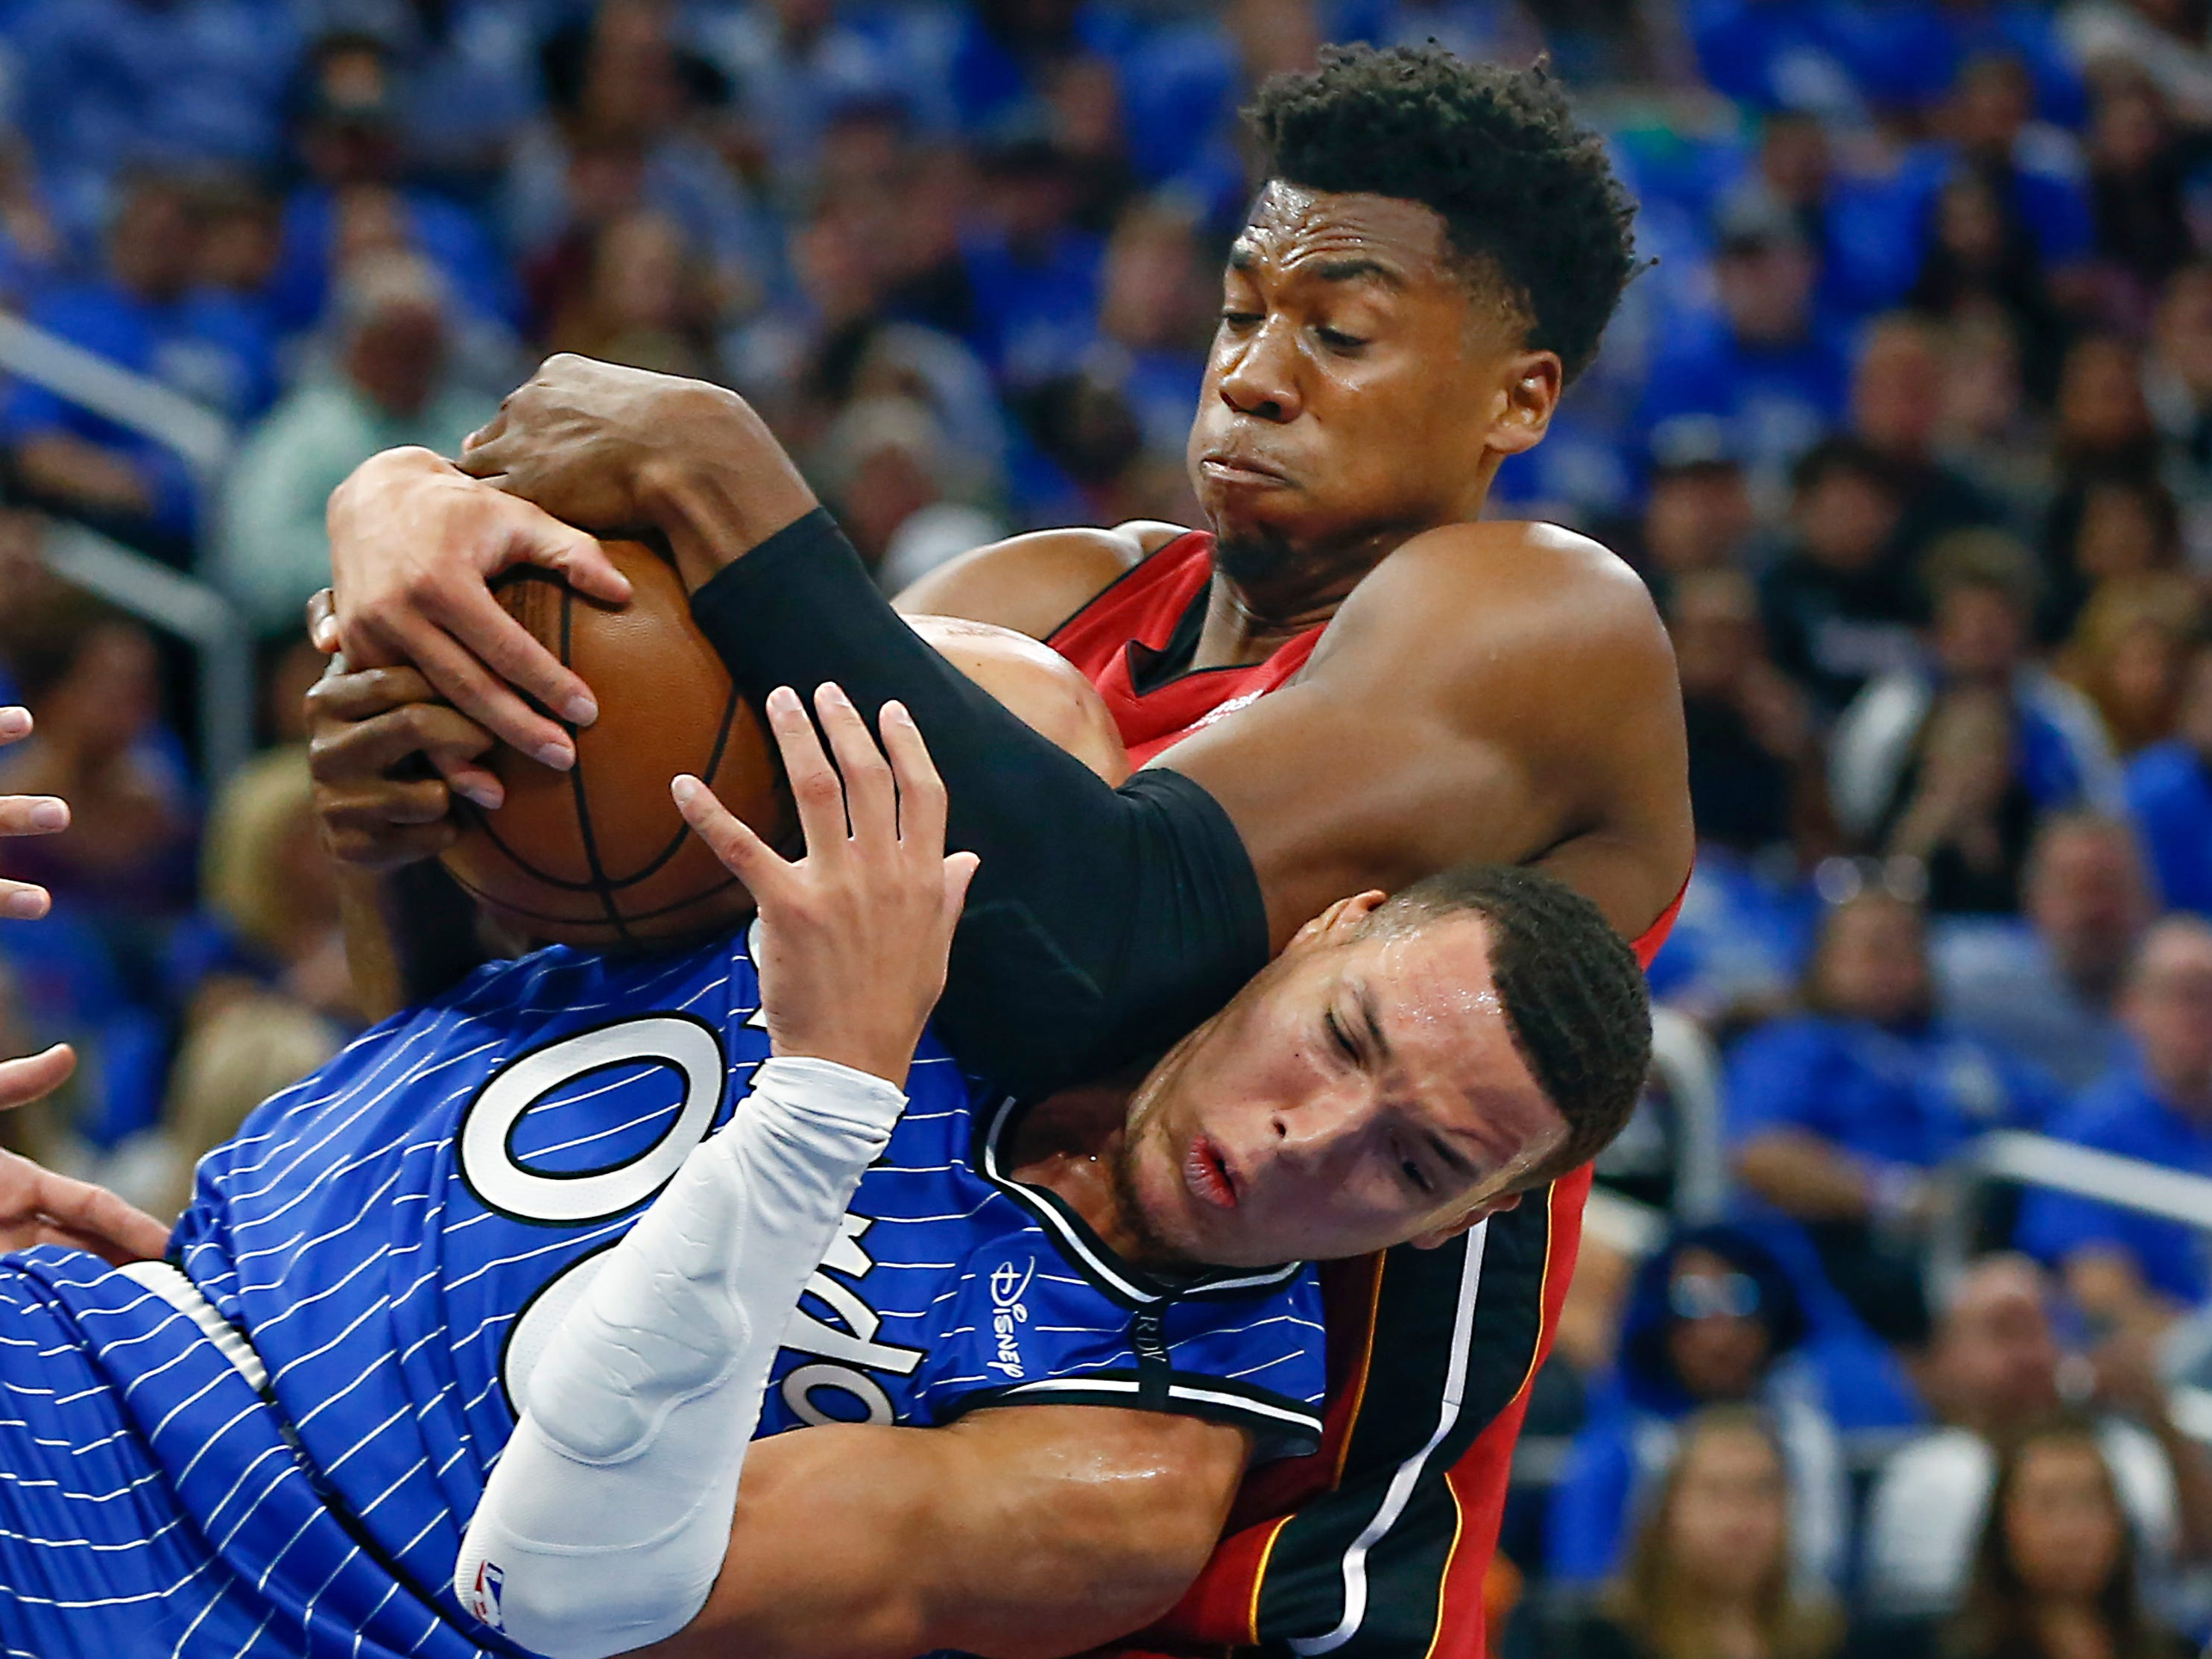 Oct. 17: Orlando Magic forward Aaron Gordon and Miami Heat center Hassan Whiteside battle for the ball during the first quarter at Amway Center.